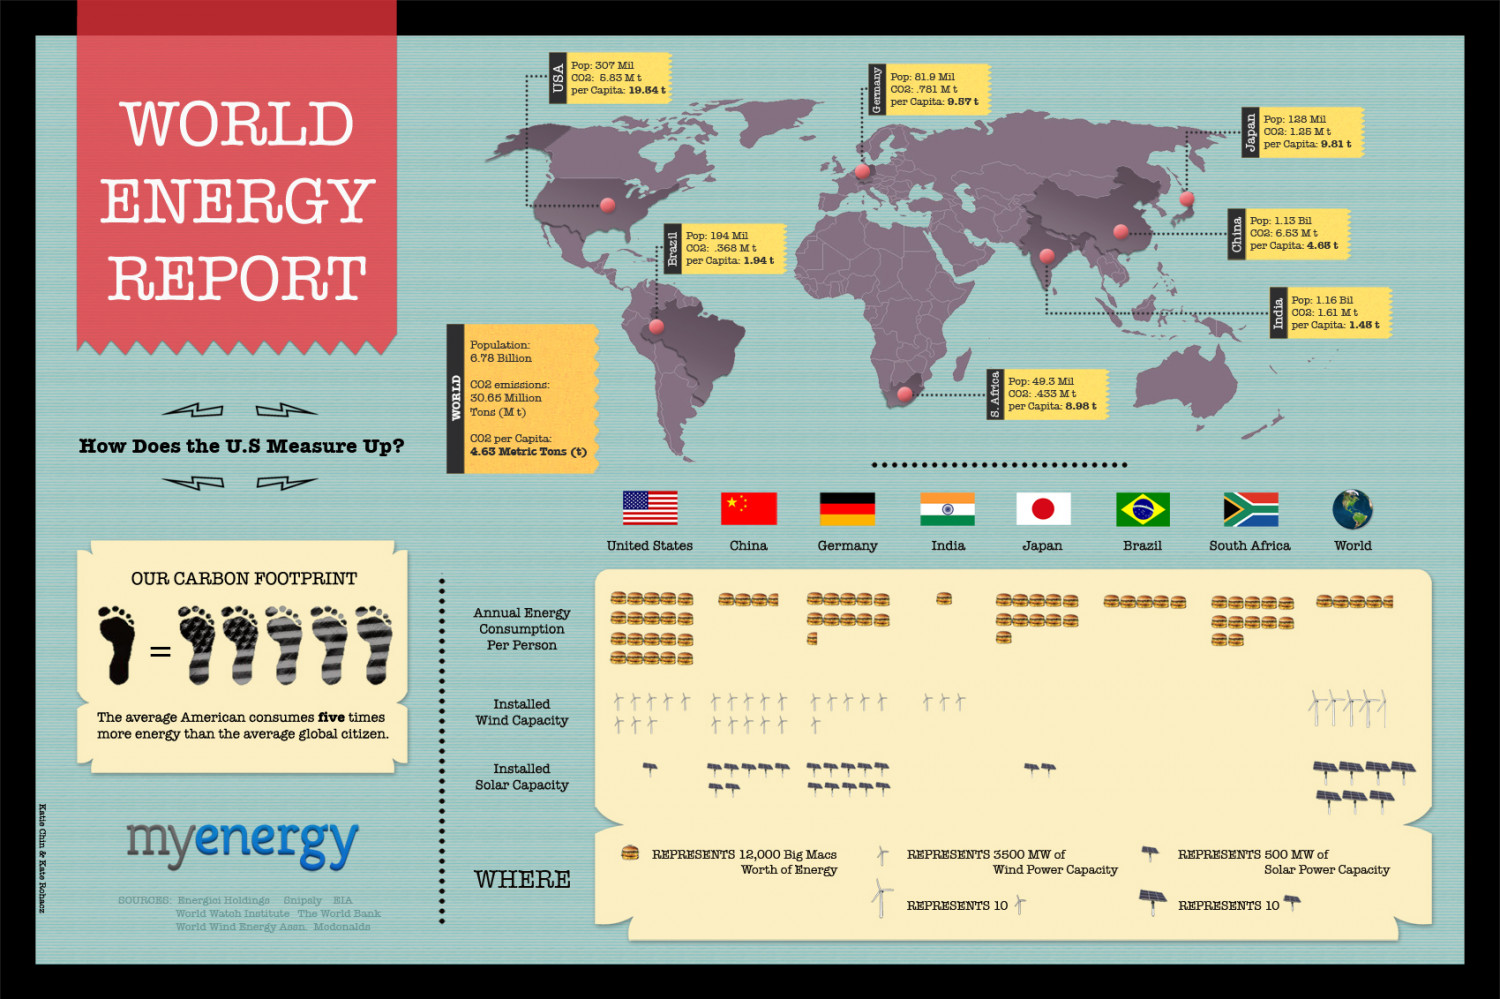 How Does American Energy Consumption Measure Up in a Global Context? Infographic